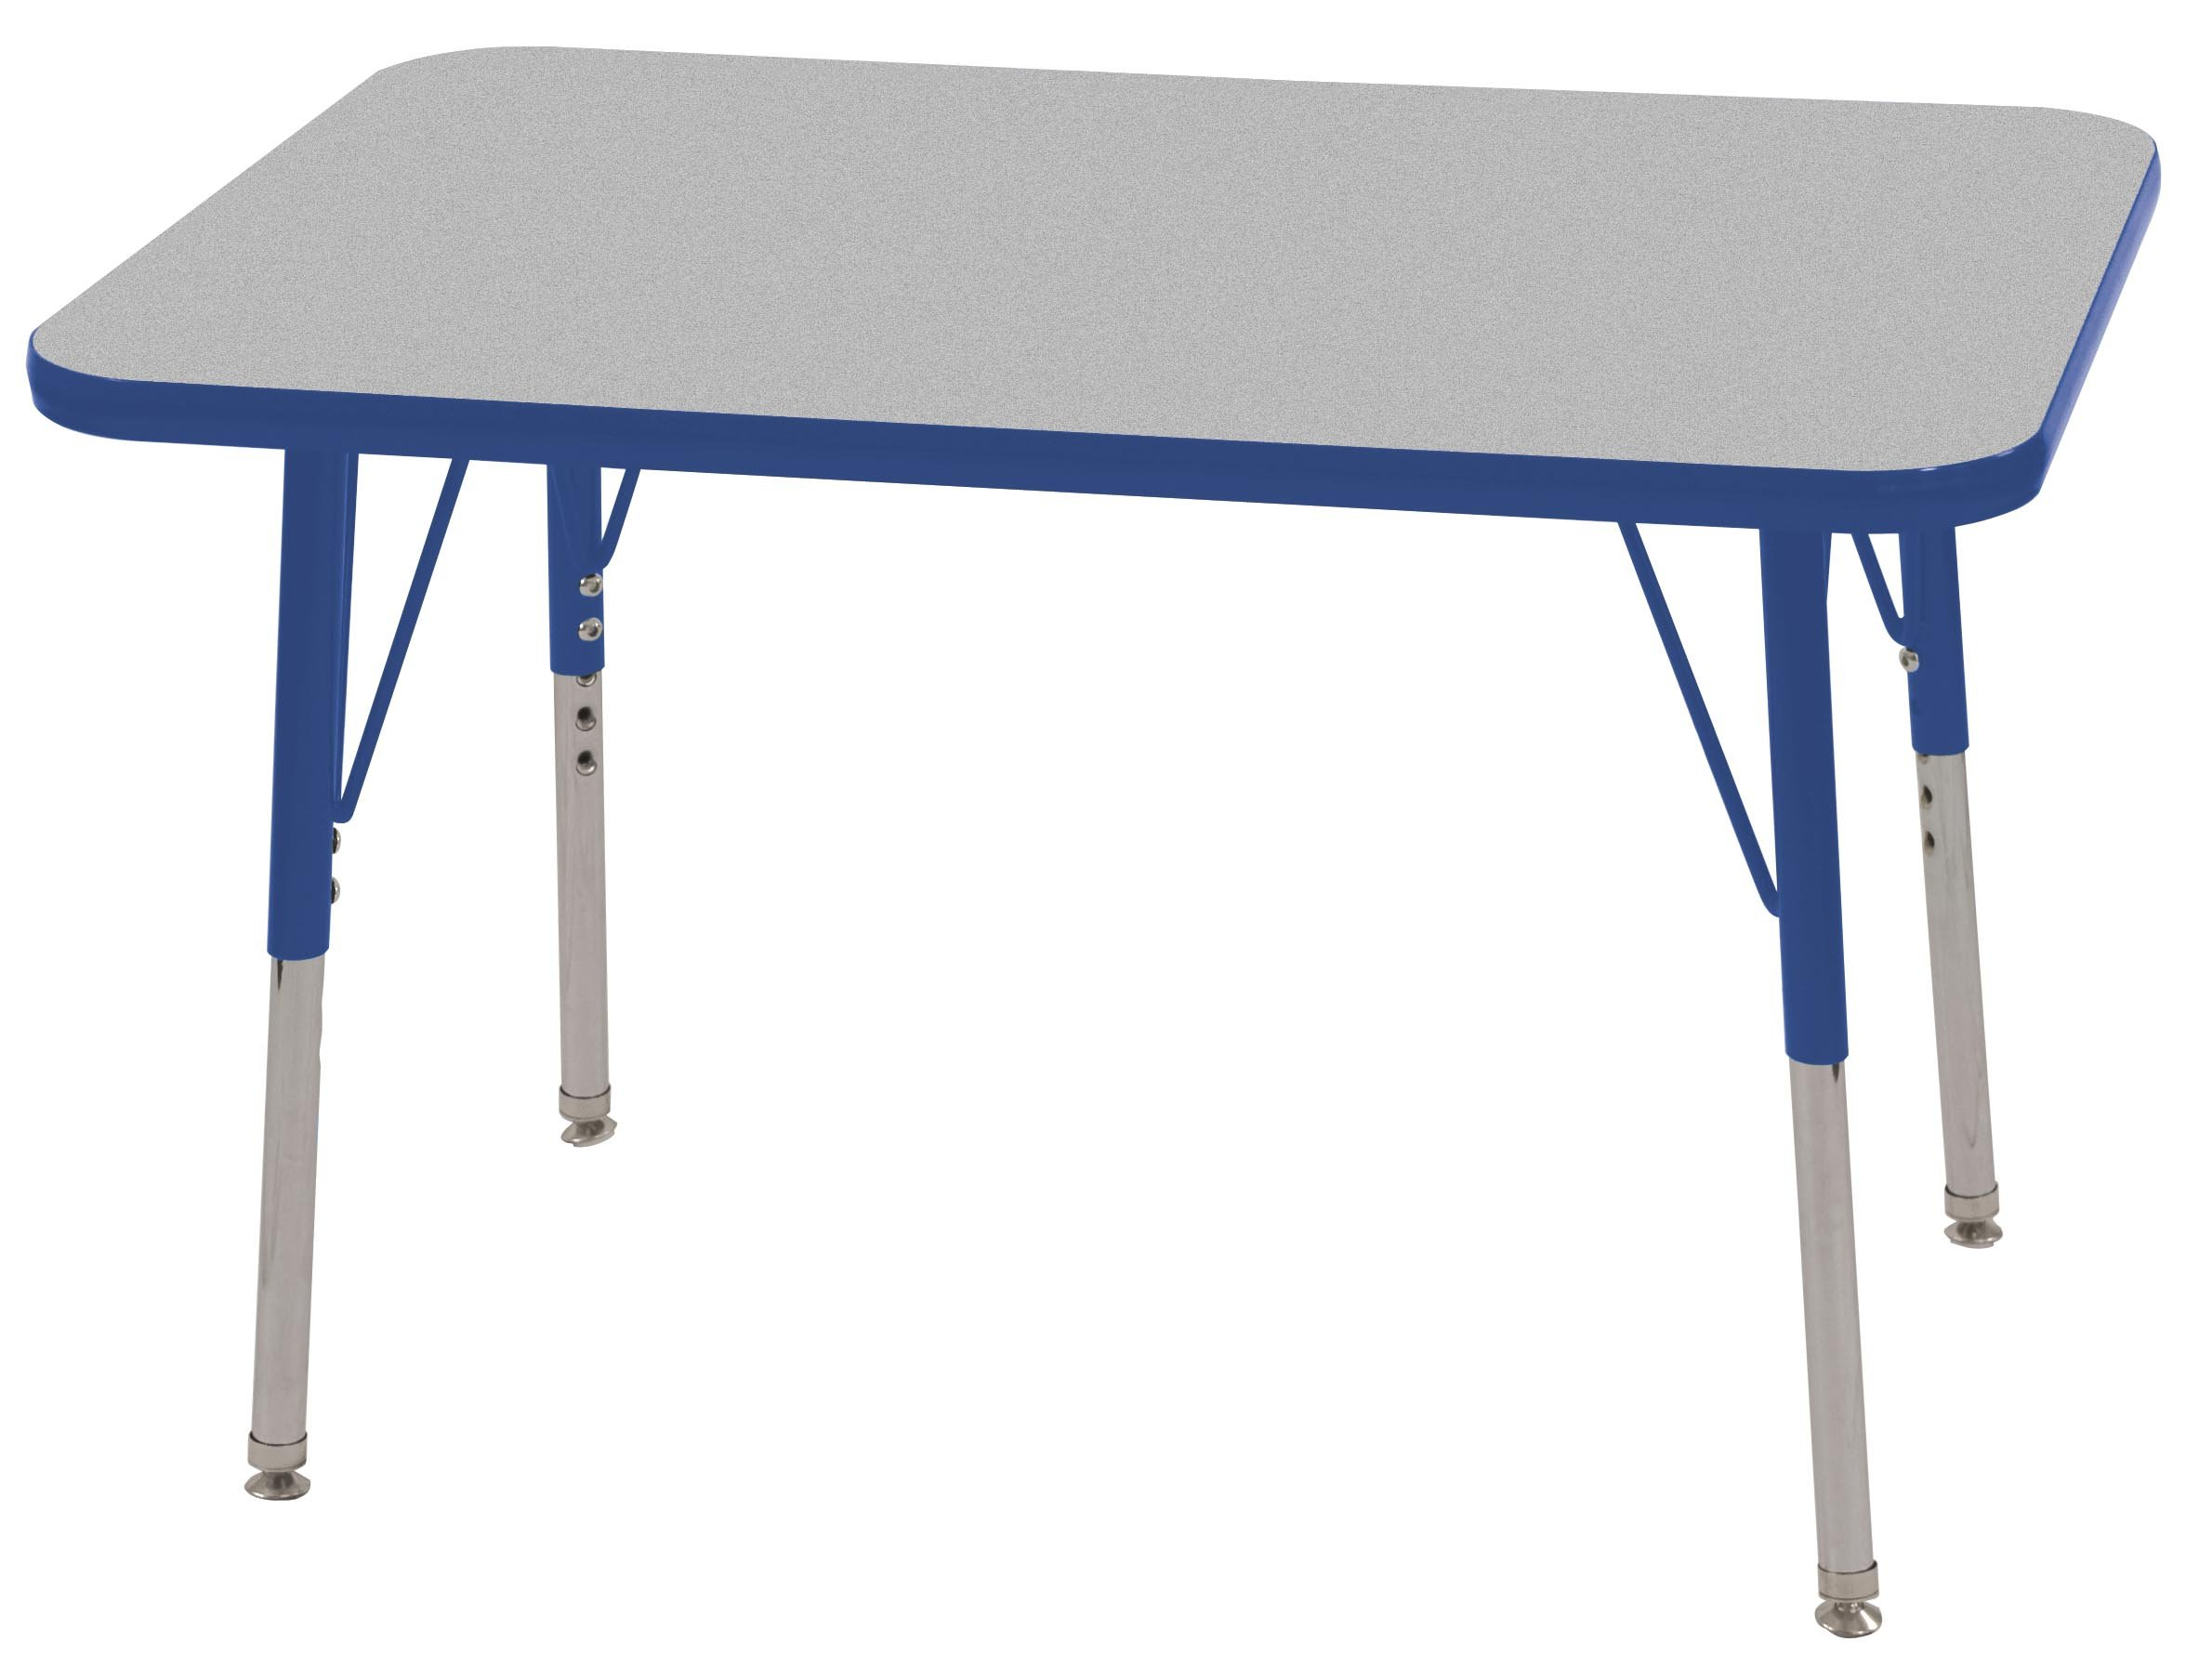 ECR4Kids T-Mold 24'' x 36'' Rectangular Activity School Table, Toddler Legs w/ Swivel Glides, Adjustable Height 15-23 inch (Grey/Blue)